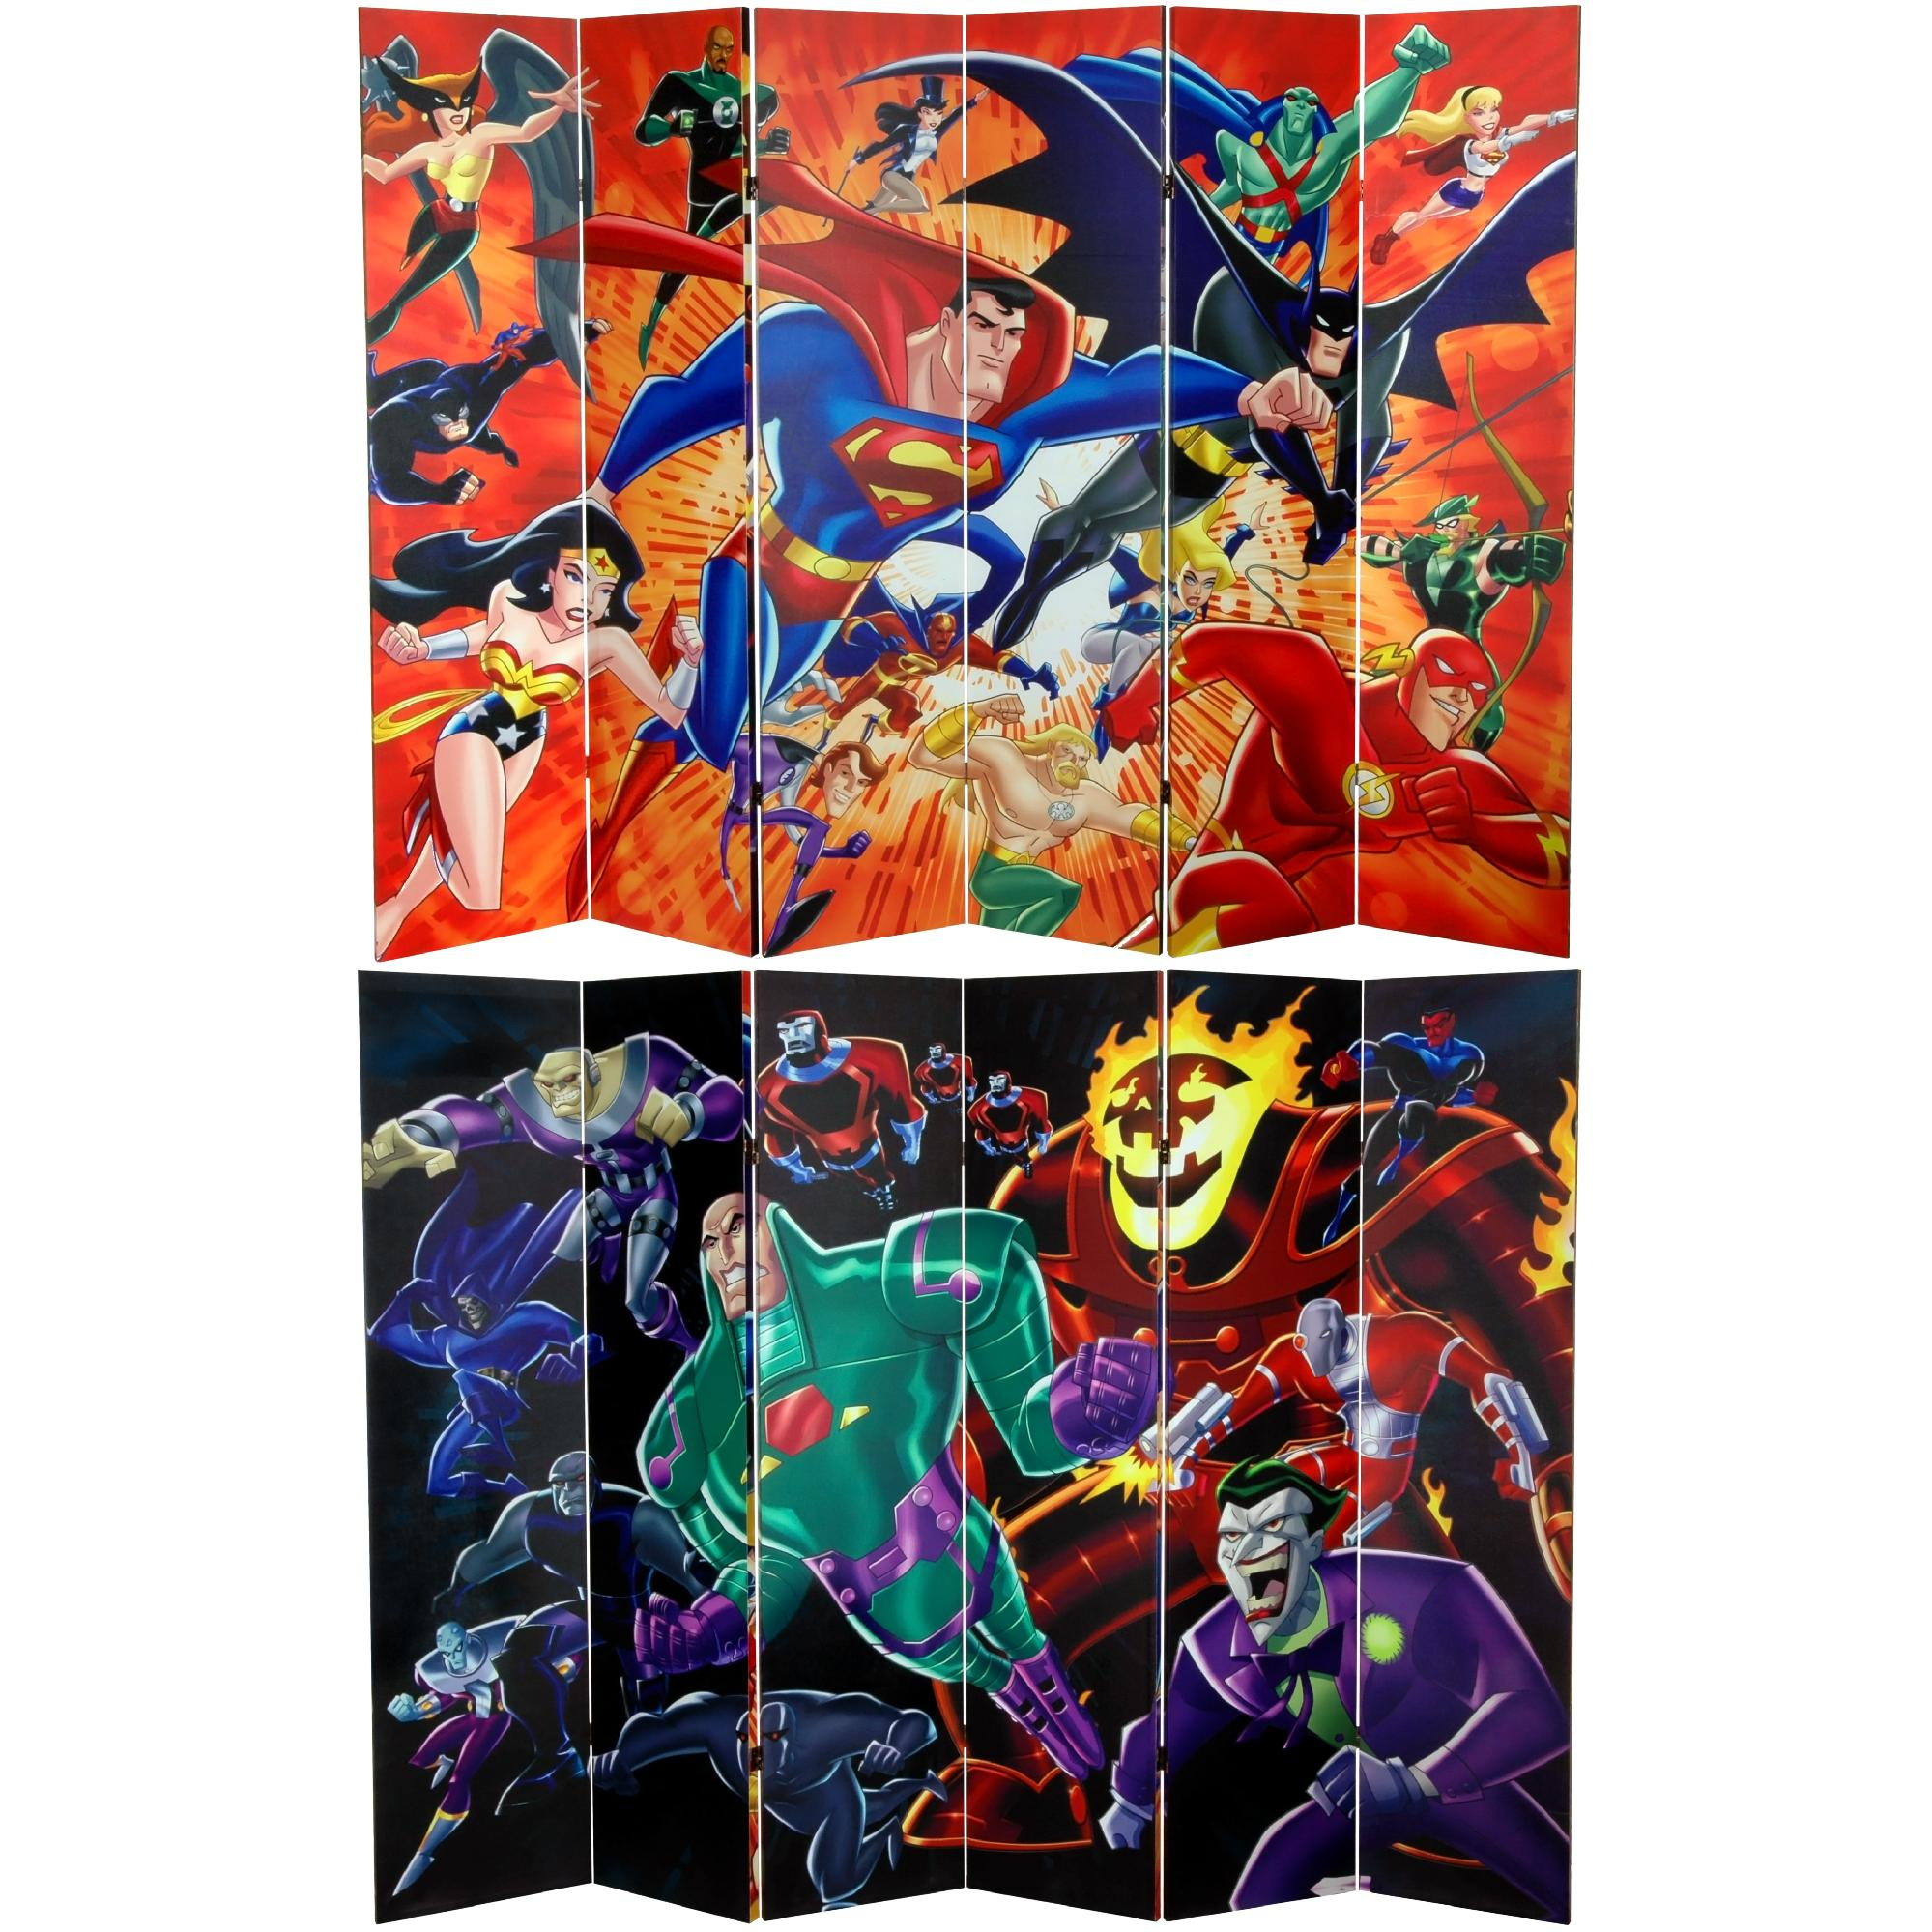 Oriental Furniture 6 ft. Tall Double Sided Justice League Heroes and Villains Canvas Room Divider PartNumber: 00838774000P KsnValue: 6125890 MfgPartNumber: CAN-WBJL-661